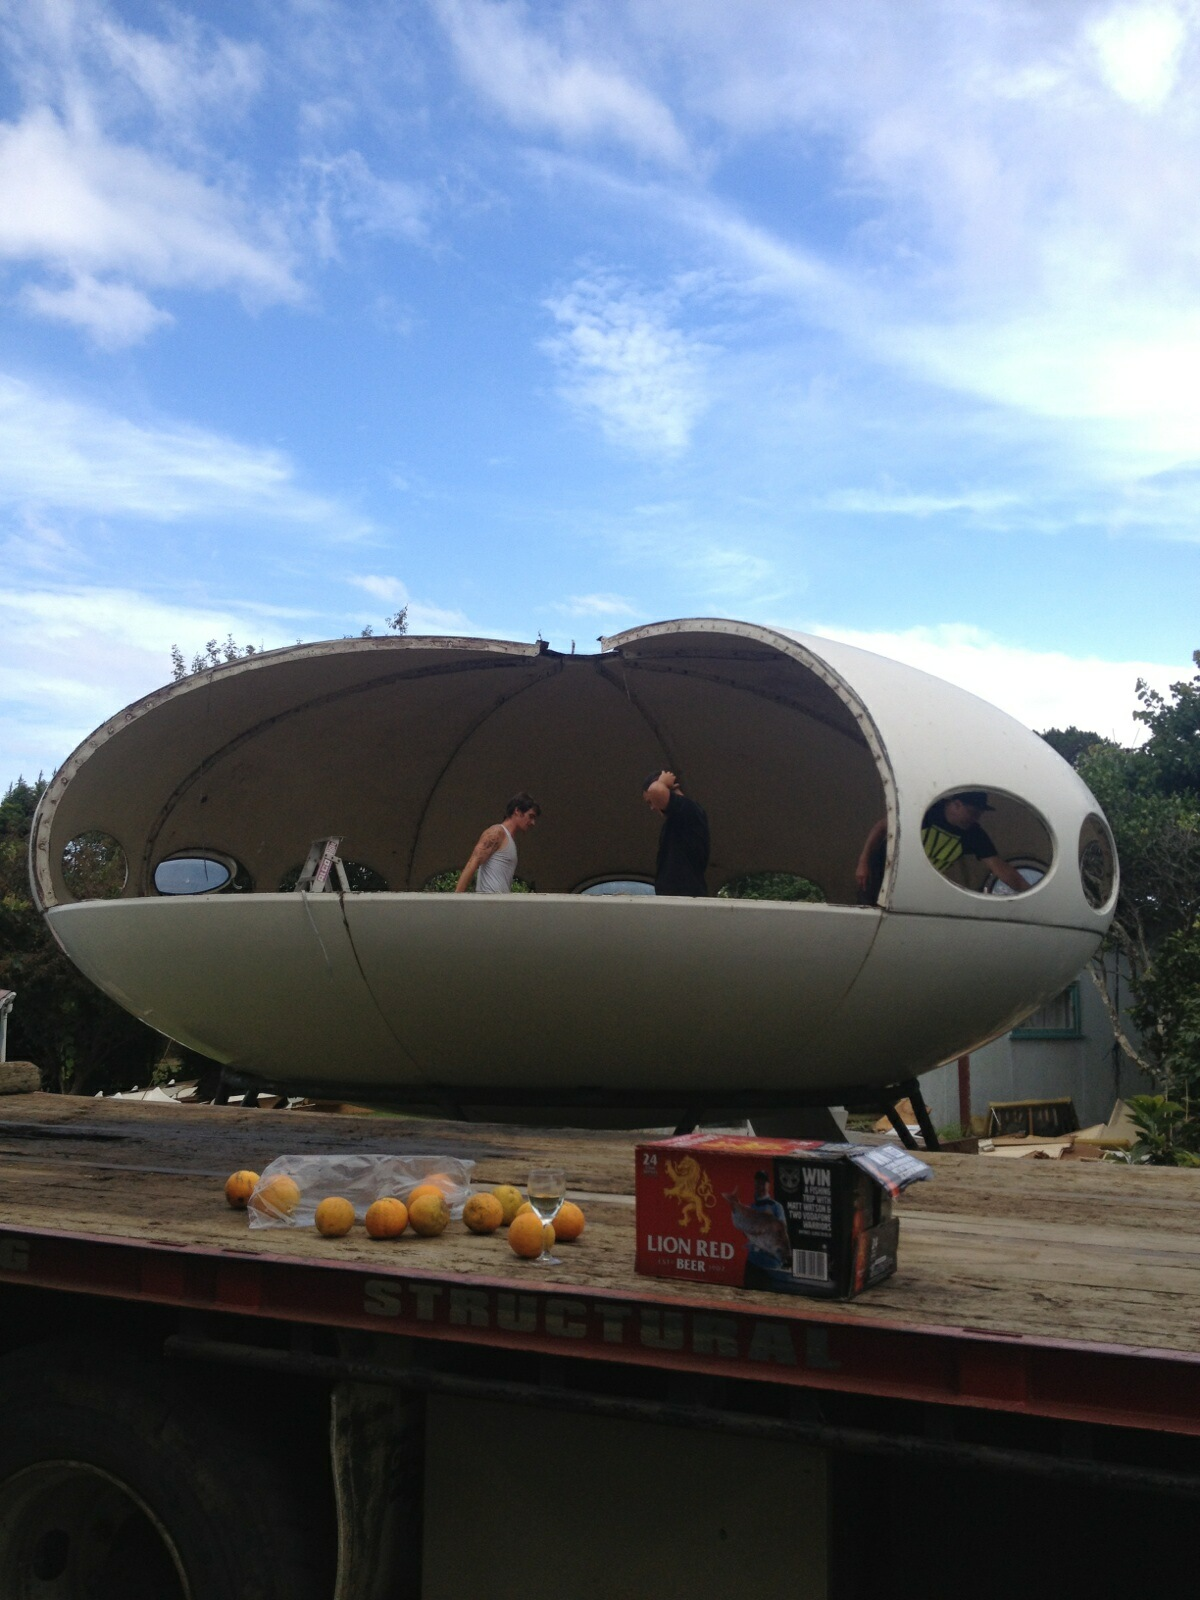 Rangiora New Zealand  city photos gallery : The Futuro House Rangiora, New Zealand Information, Photographs ...